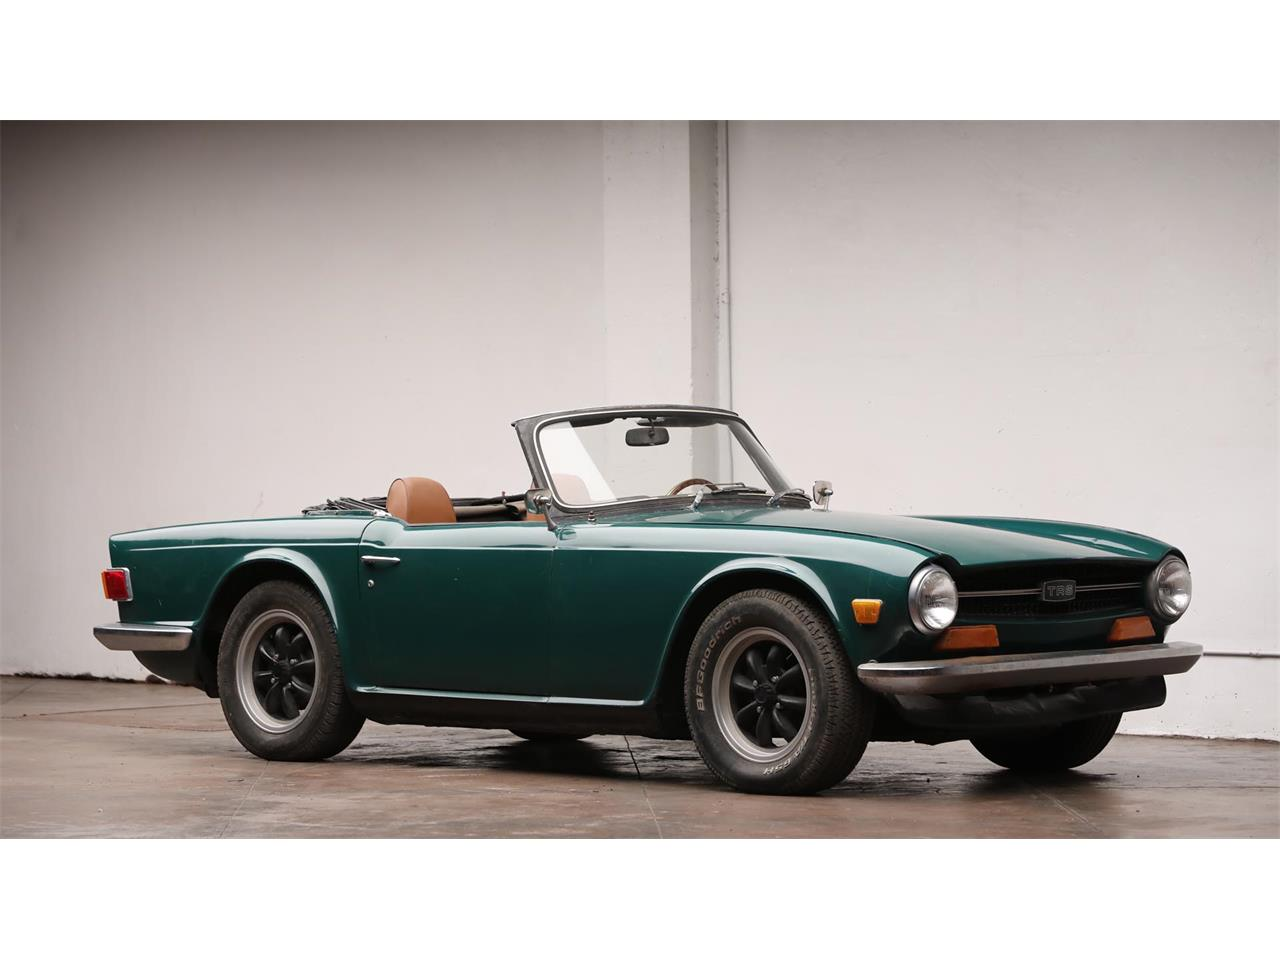 Large Picture of 1972 Triumph TR6 located in Texas Auction Vehicle Offered by Worldwide Auctioneers - QRBA